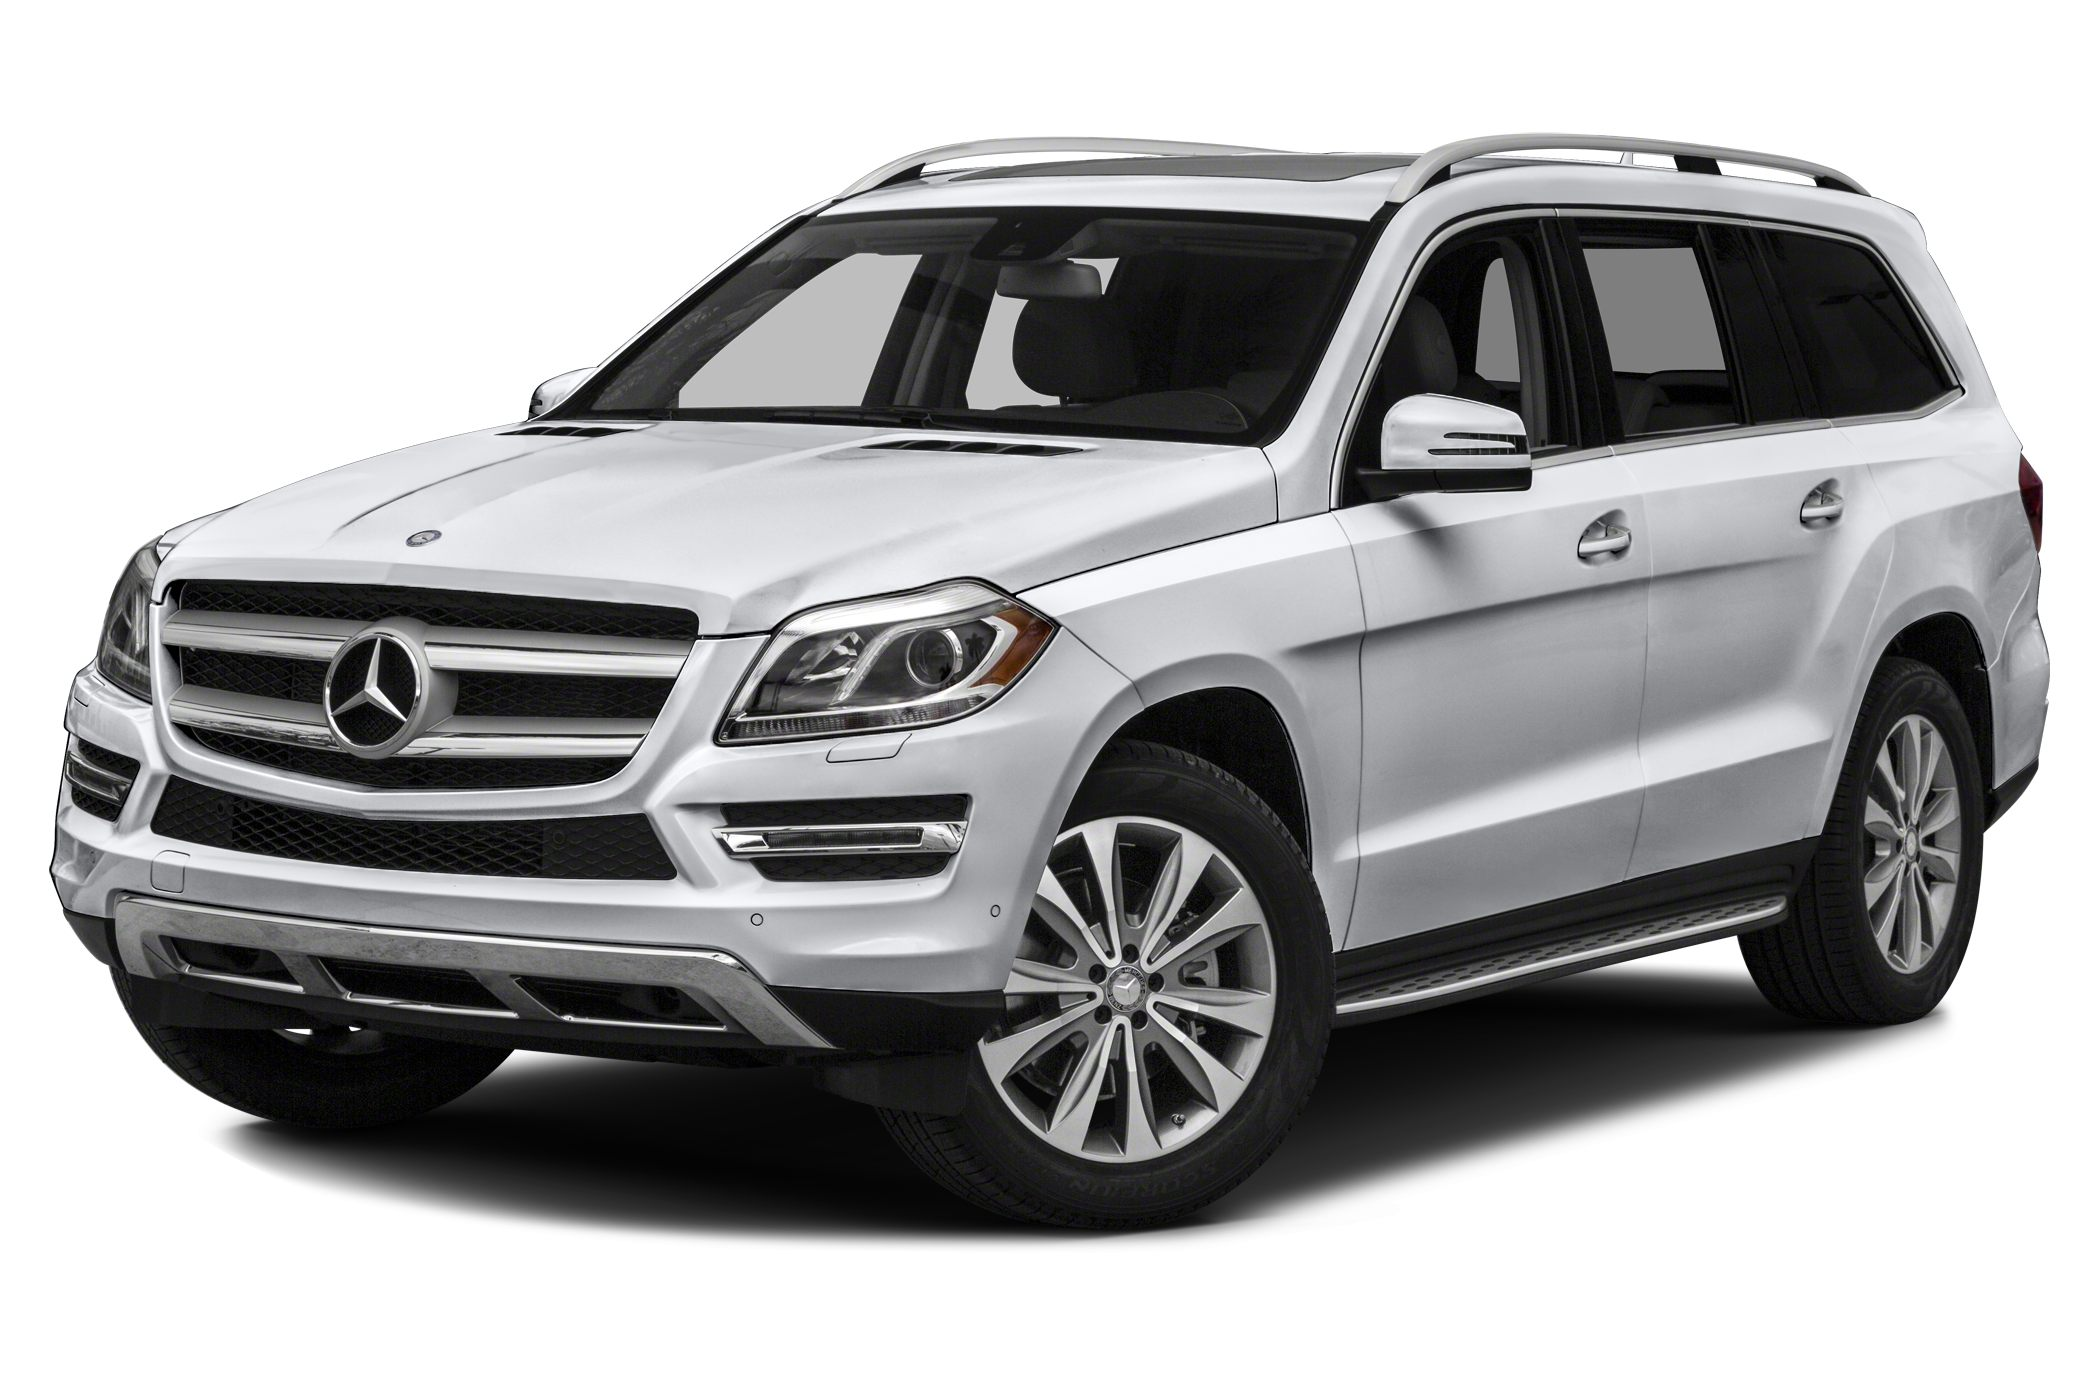 2013 mercedes benz gl450 w video autoblog. Black Bedroom Furniture Sets. Home Design Ideas